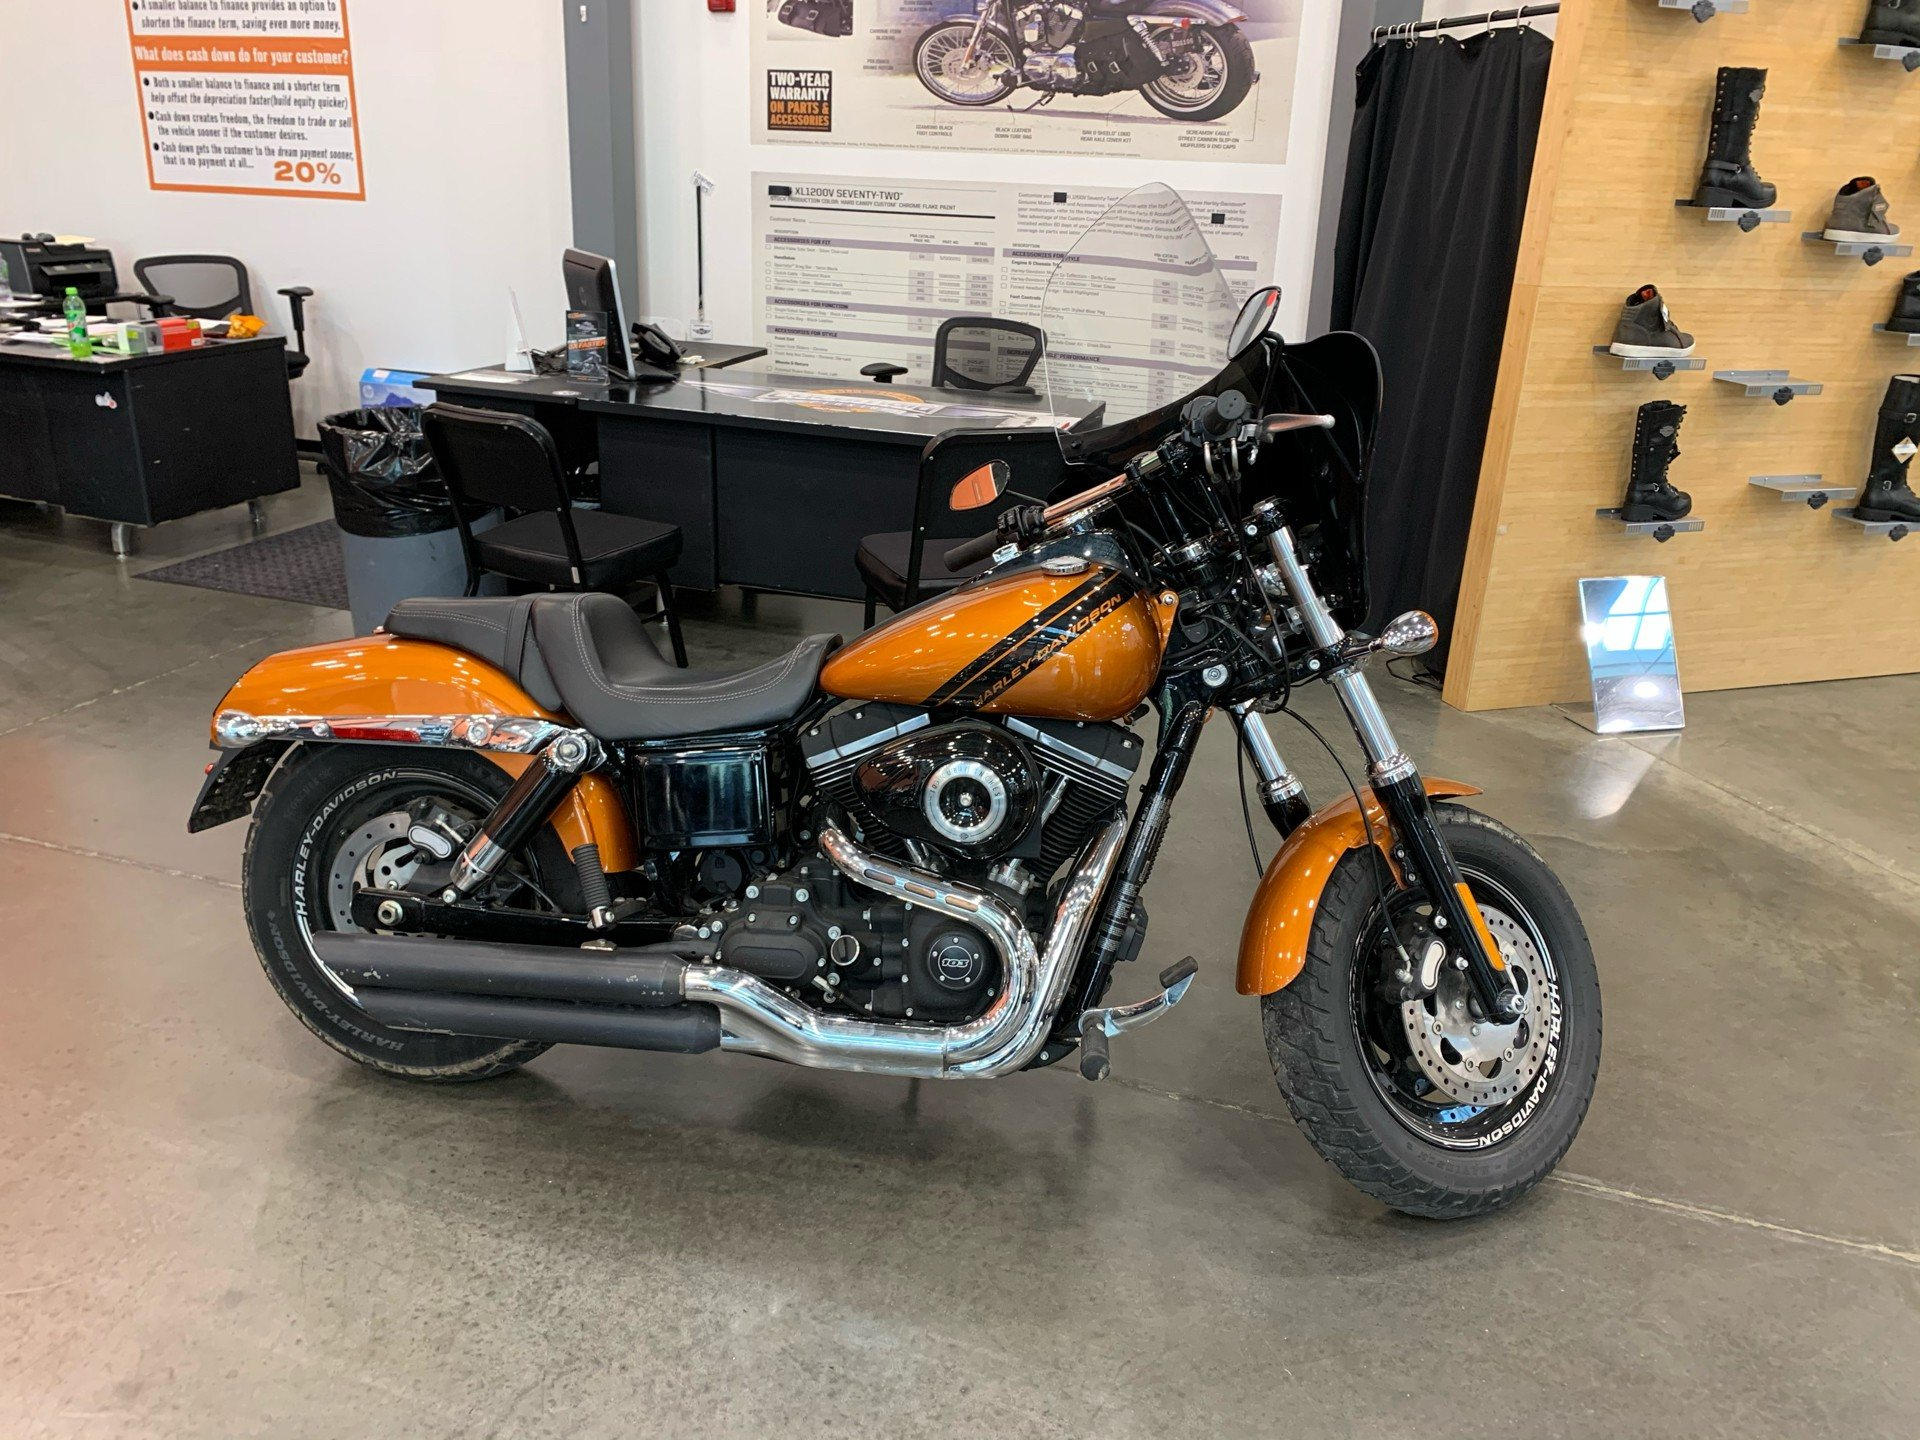 2014 Harley-Davidson FAT BOB in Columbia, Tennessee - Photo 1